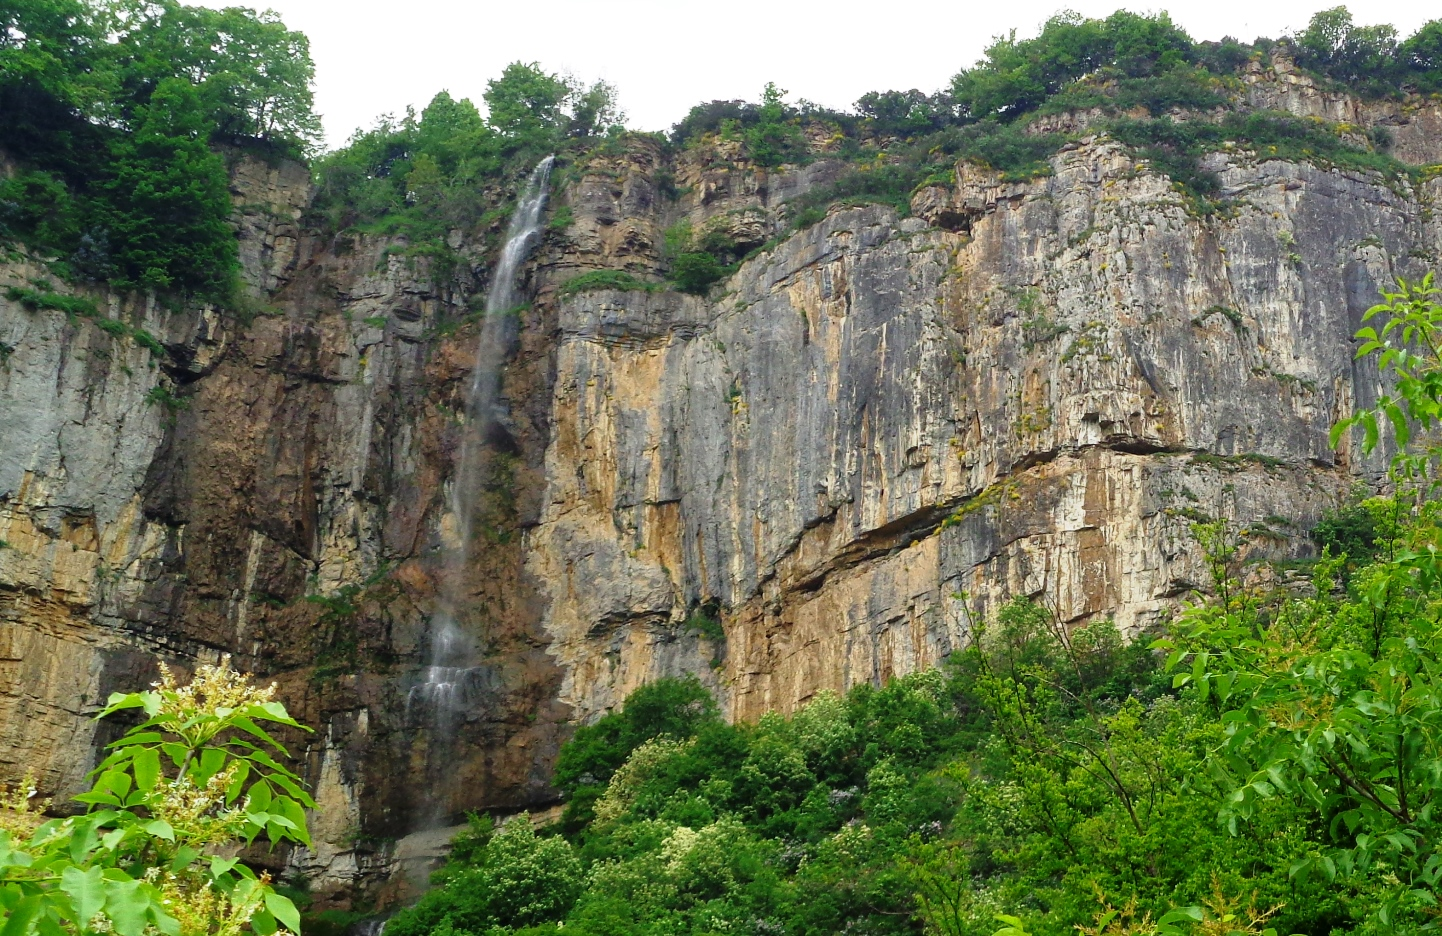 The Skaklia Waterfall